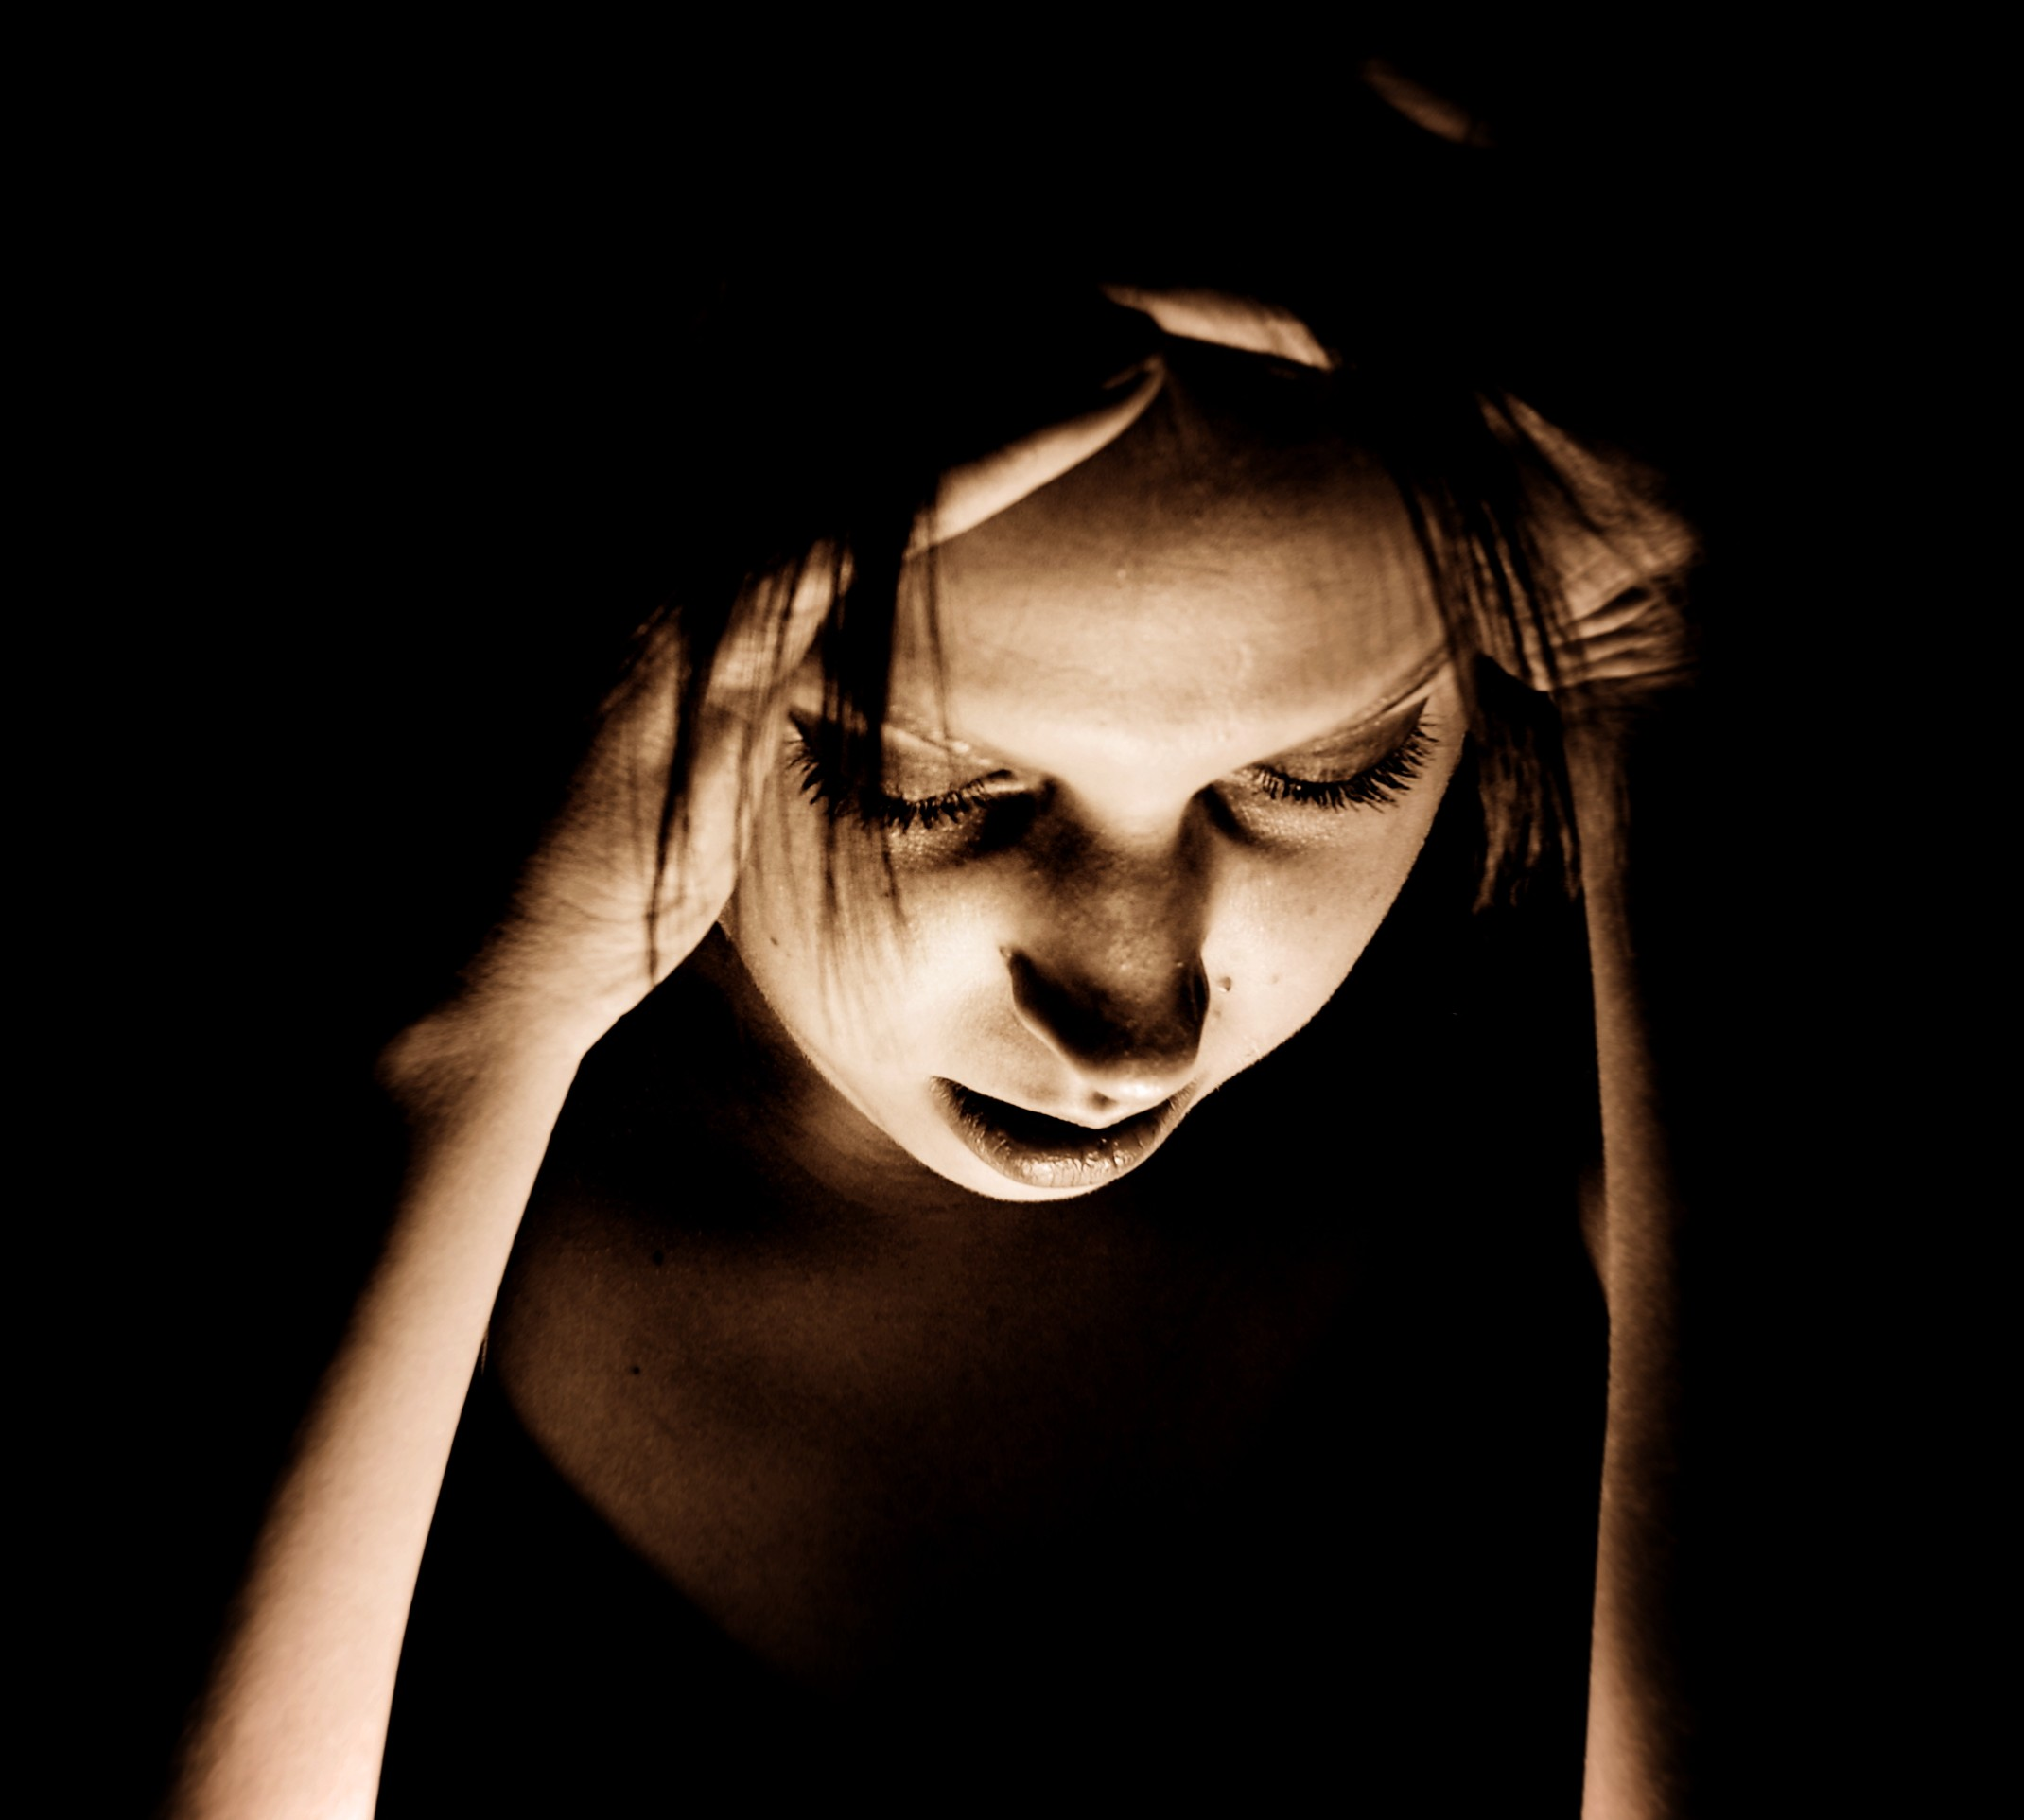 A Girl Suffering from Migraine